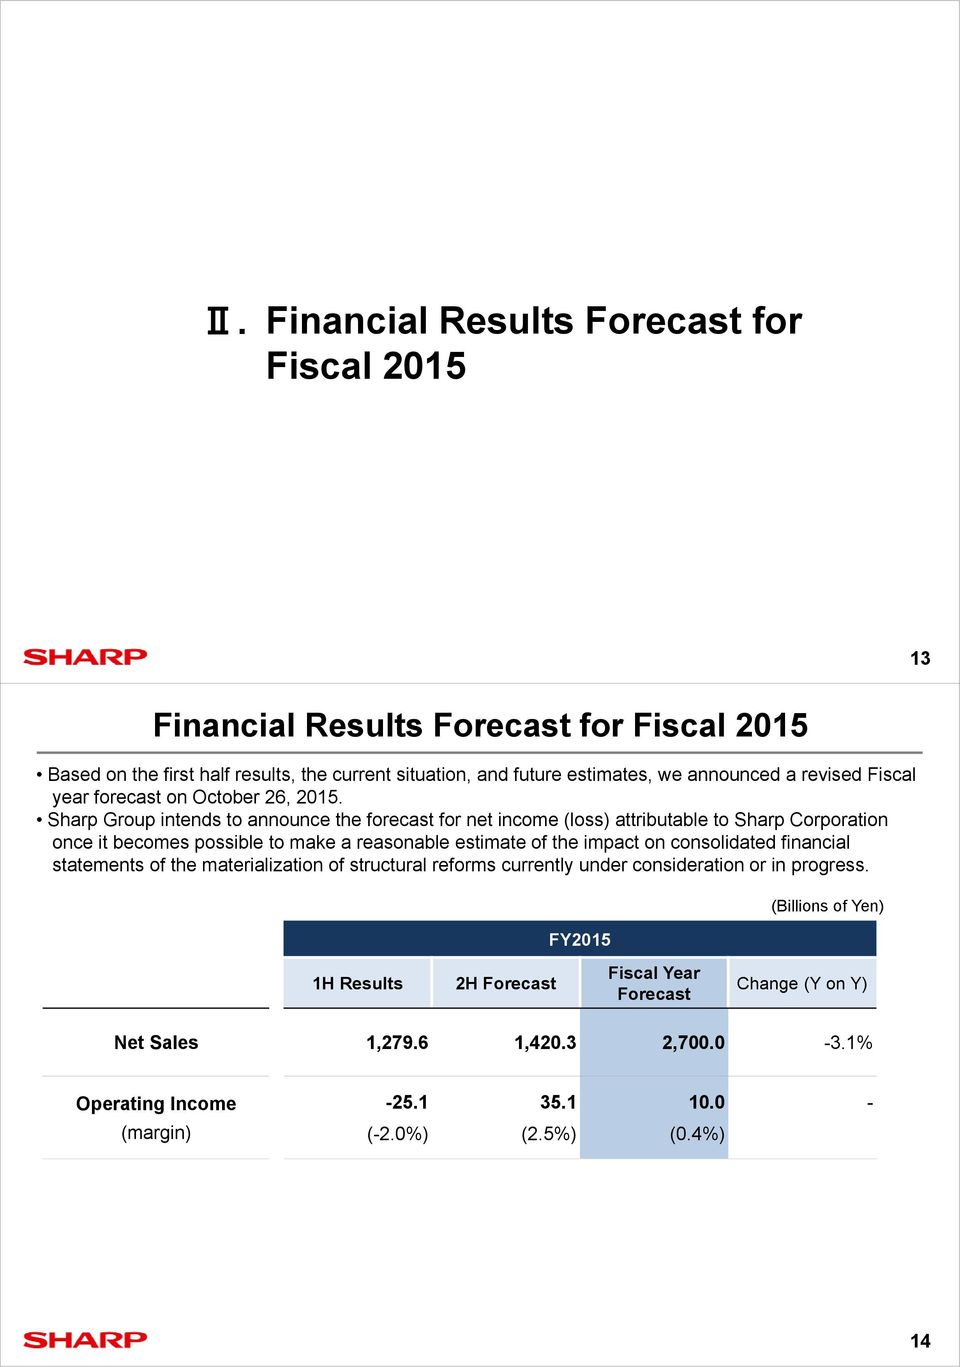 Sharp Group intends to announce the forecast for net income (loss) attributable to Sharp Corporation once it becomes possible to make a reasonable estimate of